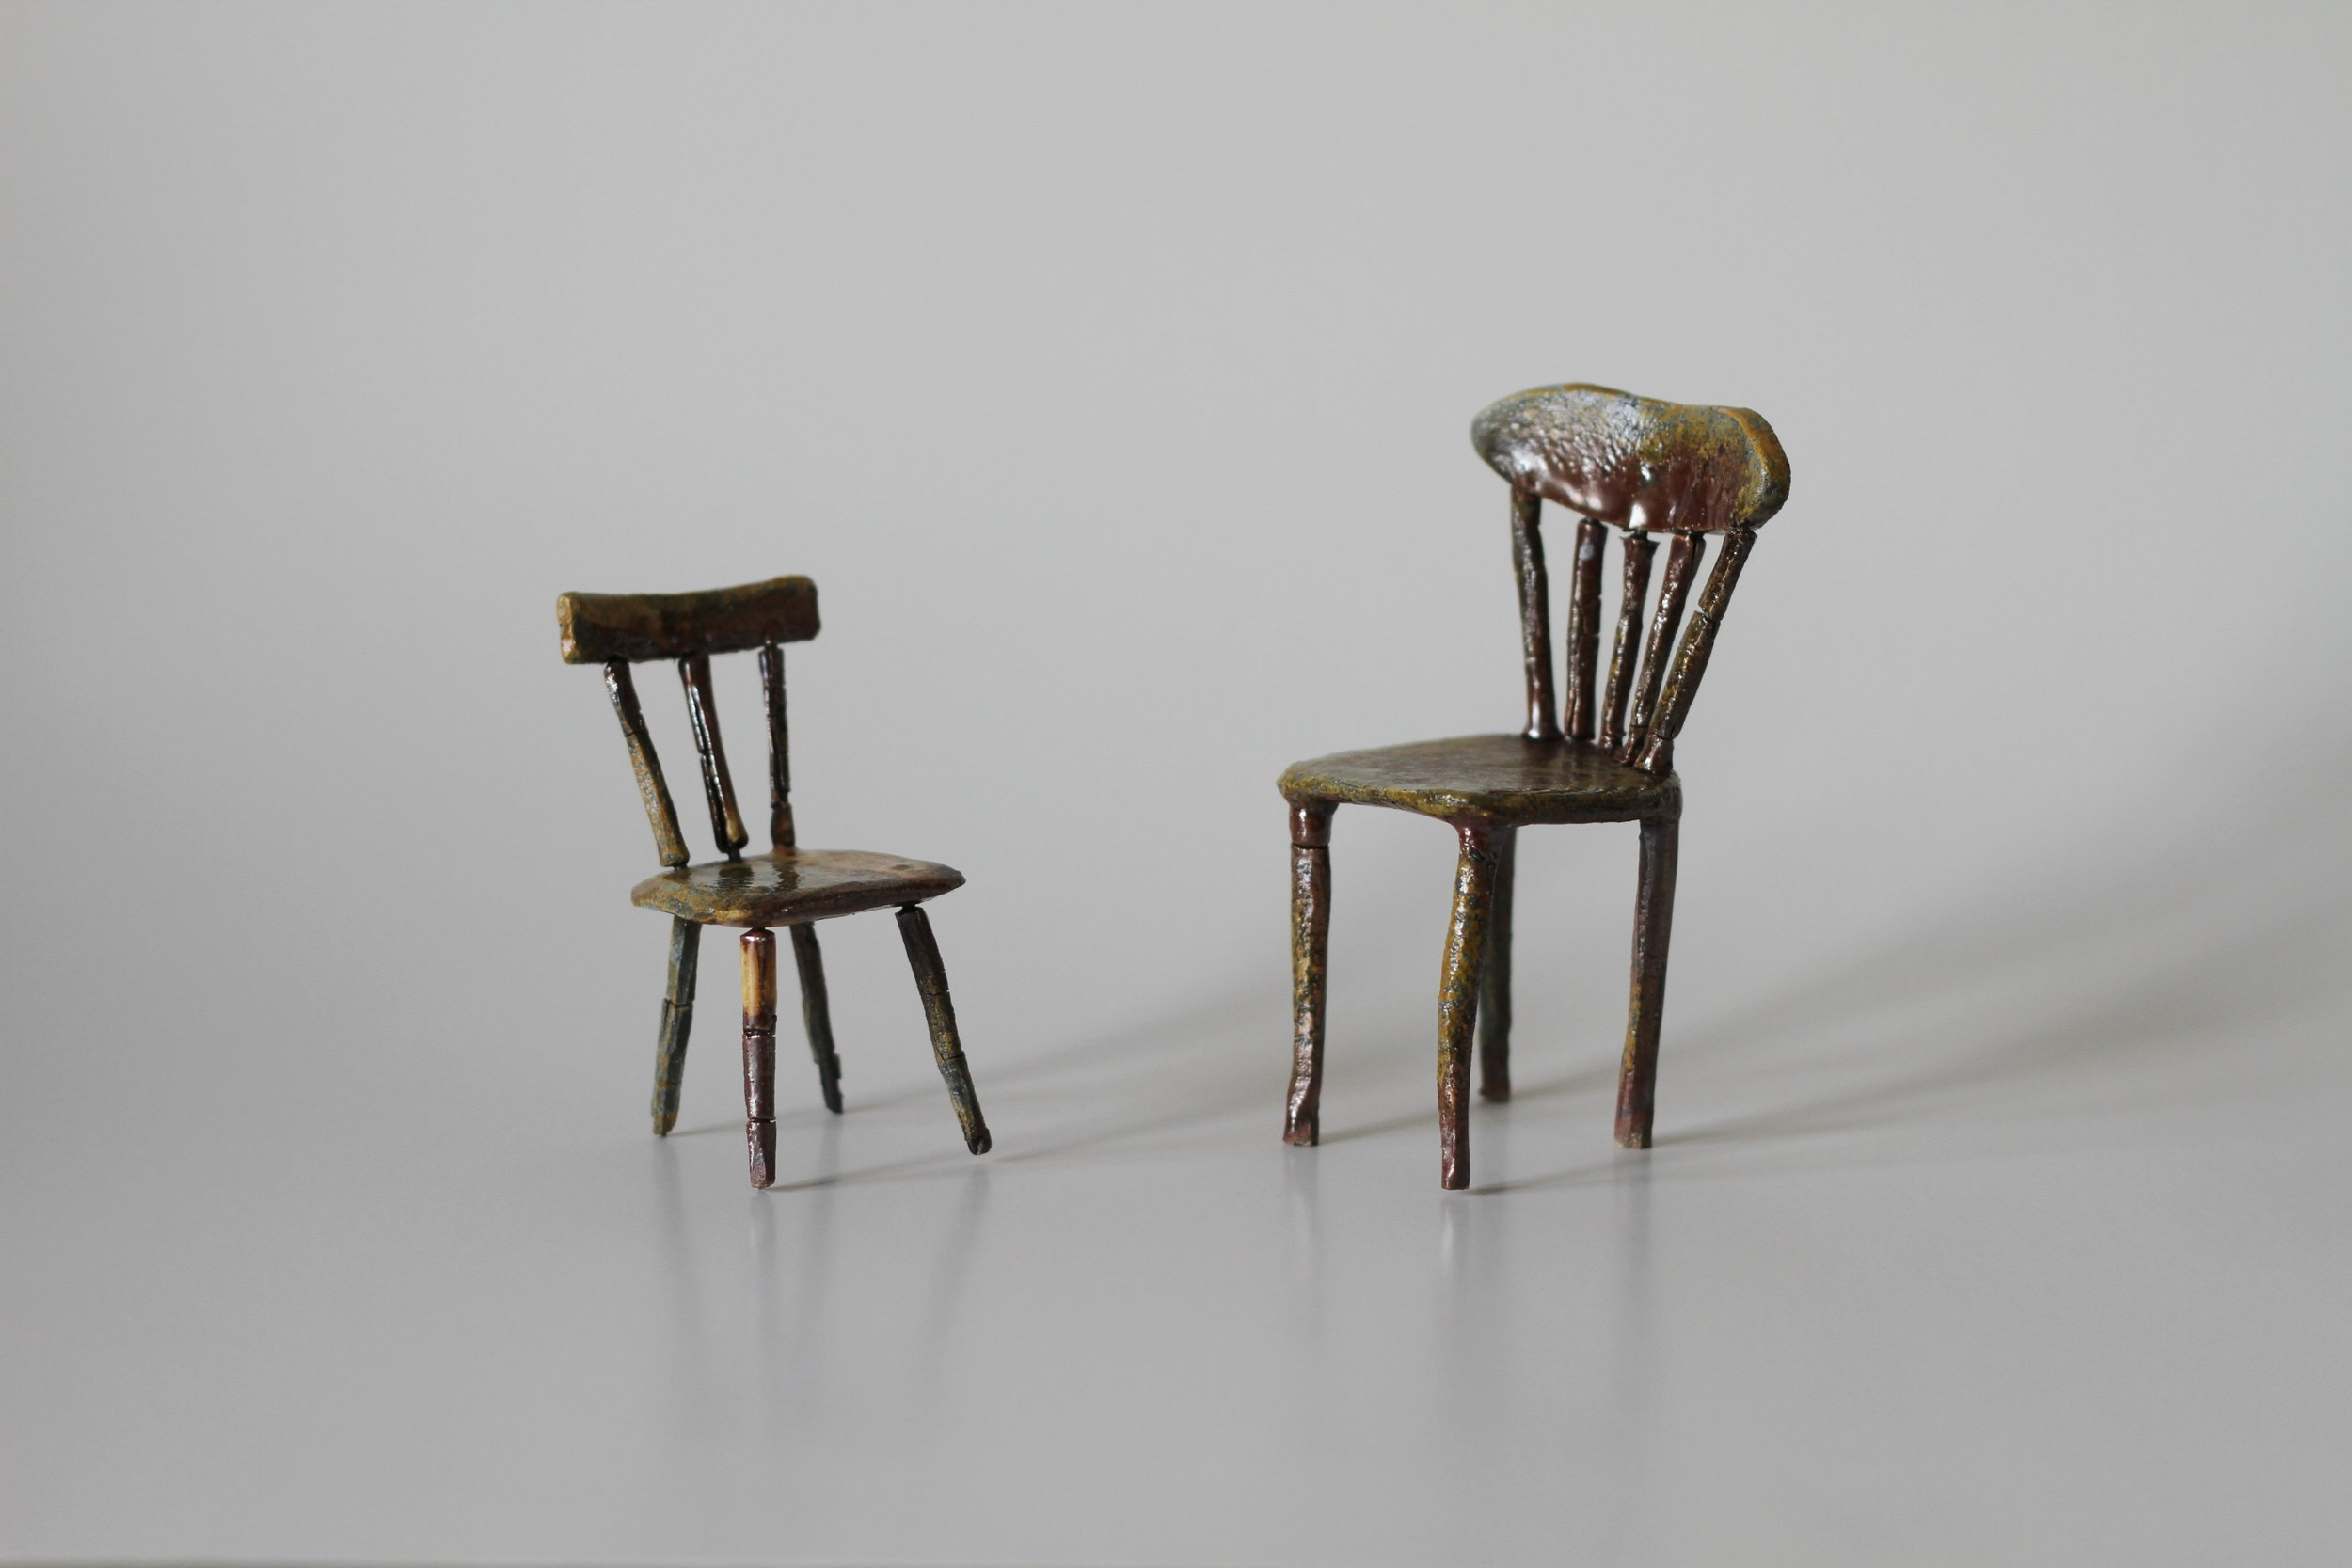 lonely chairs (woodfired)